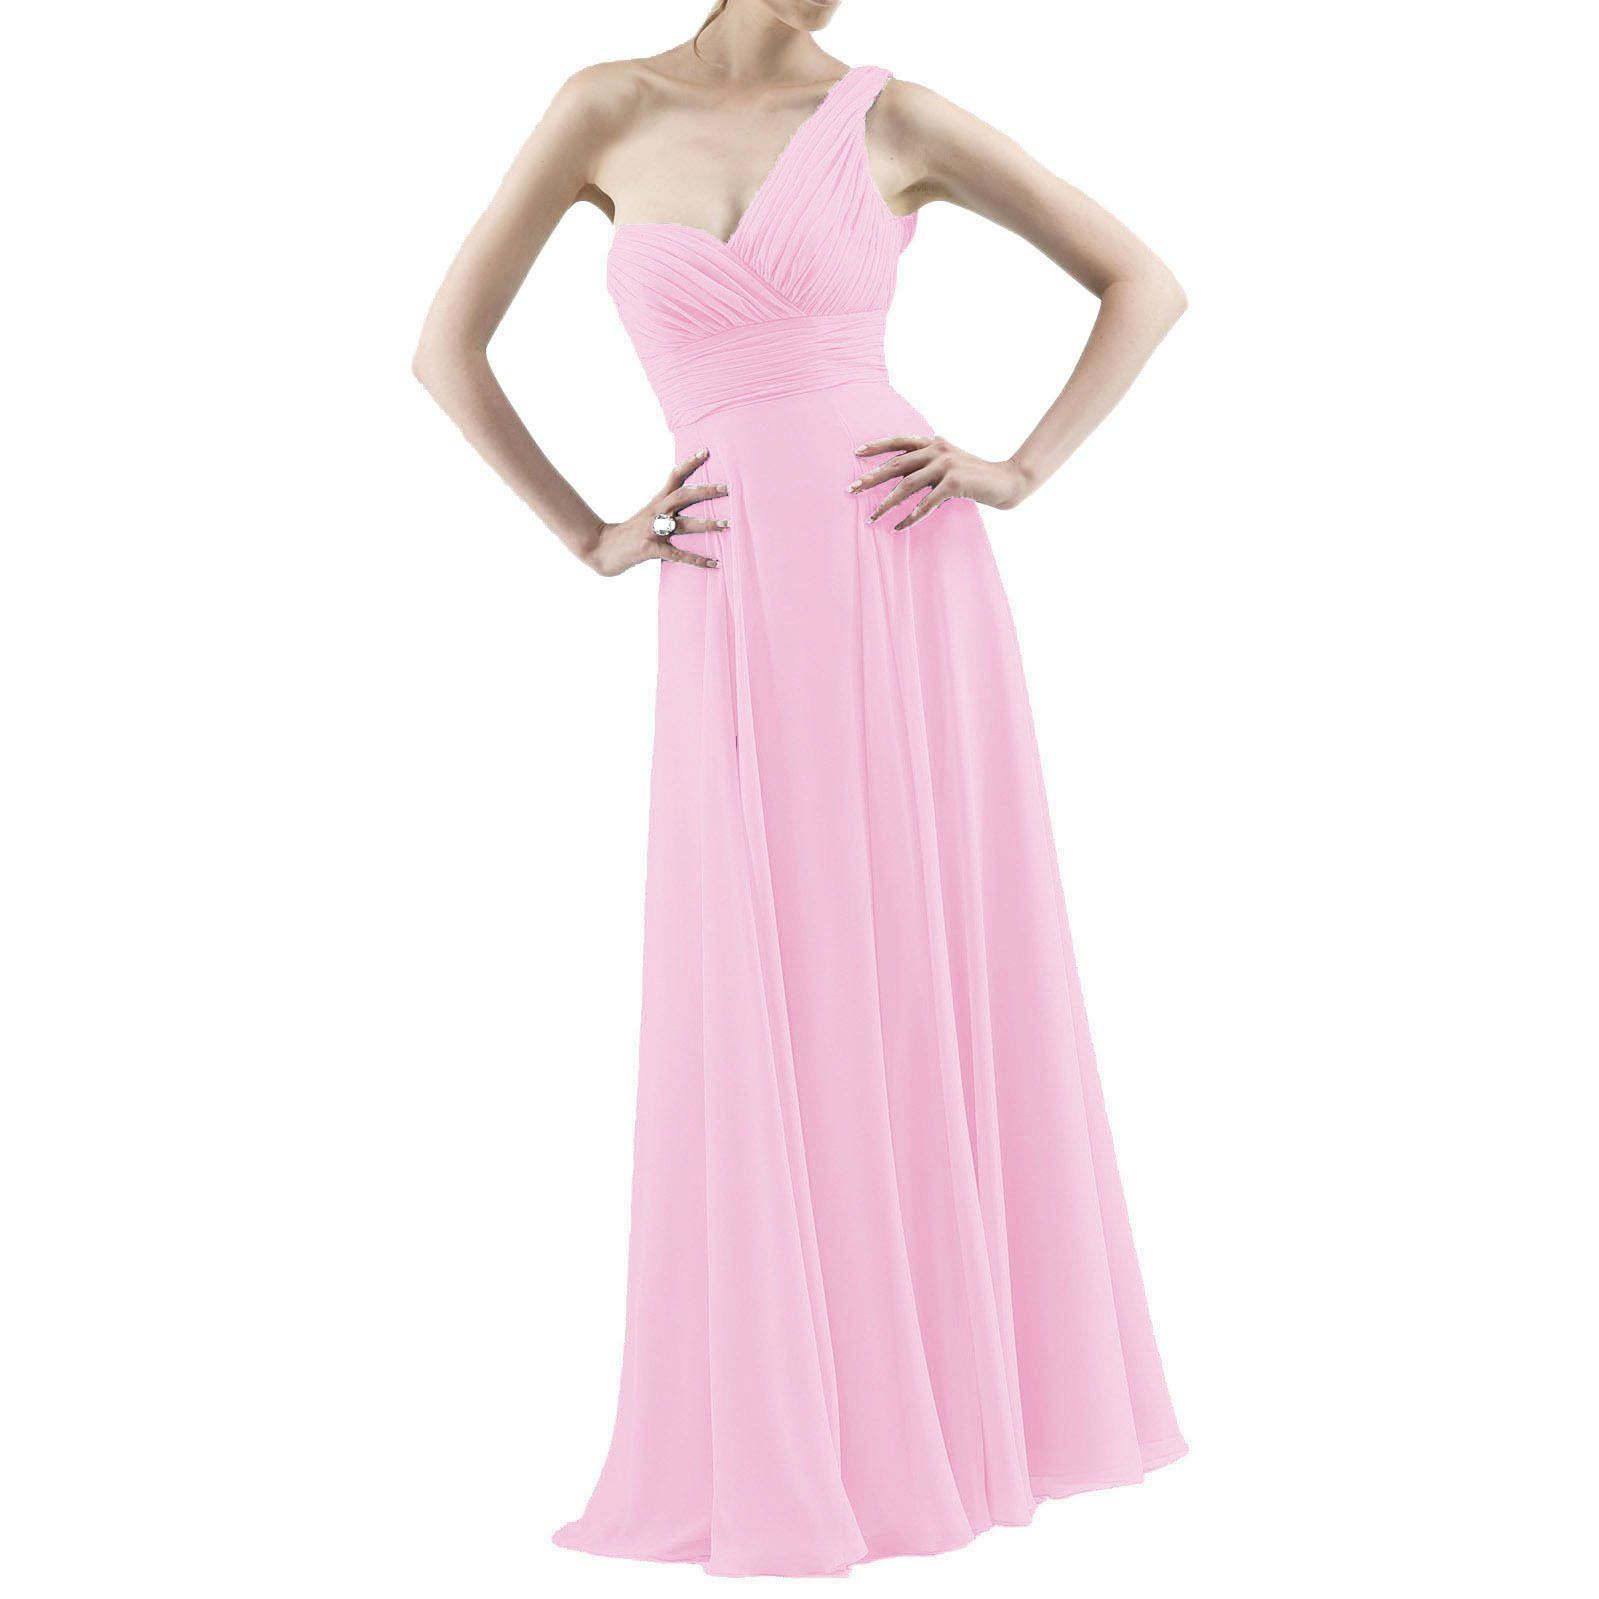 8c33735c347 ModeC Womens Pleat Chiffon One Shoulder Bridesmaid Dresses Long Evening Gown  Pink US10 -- You